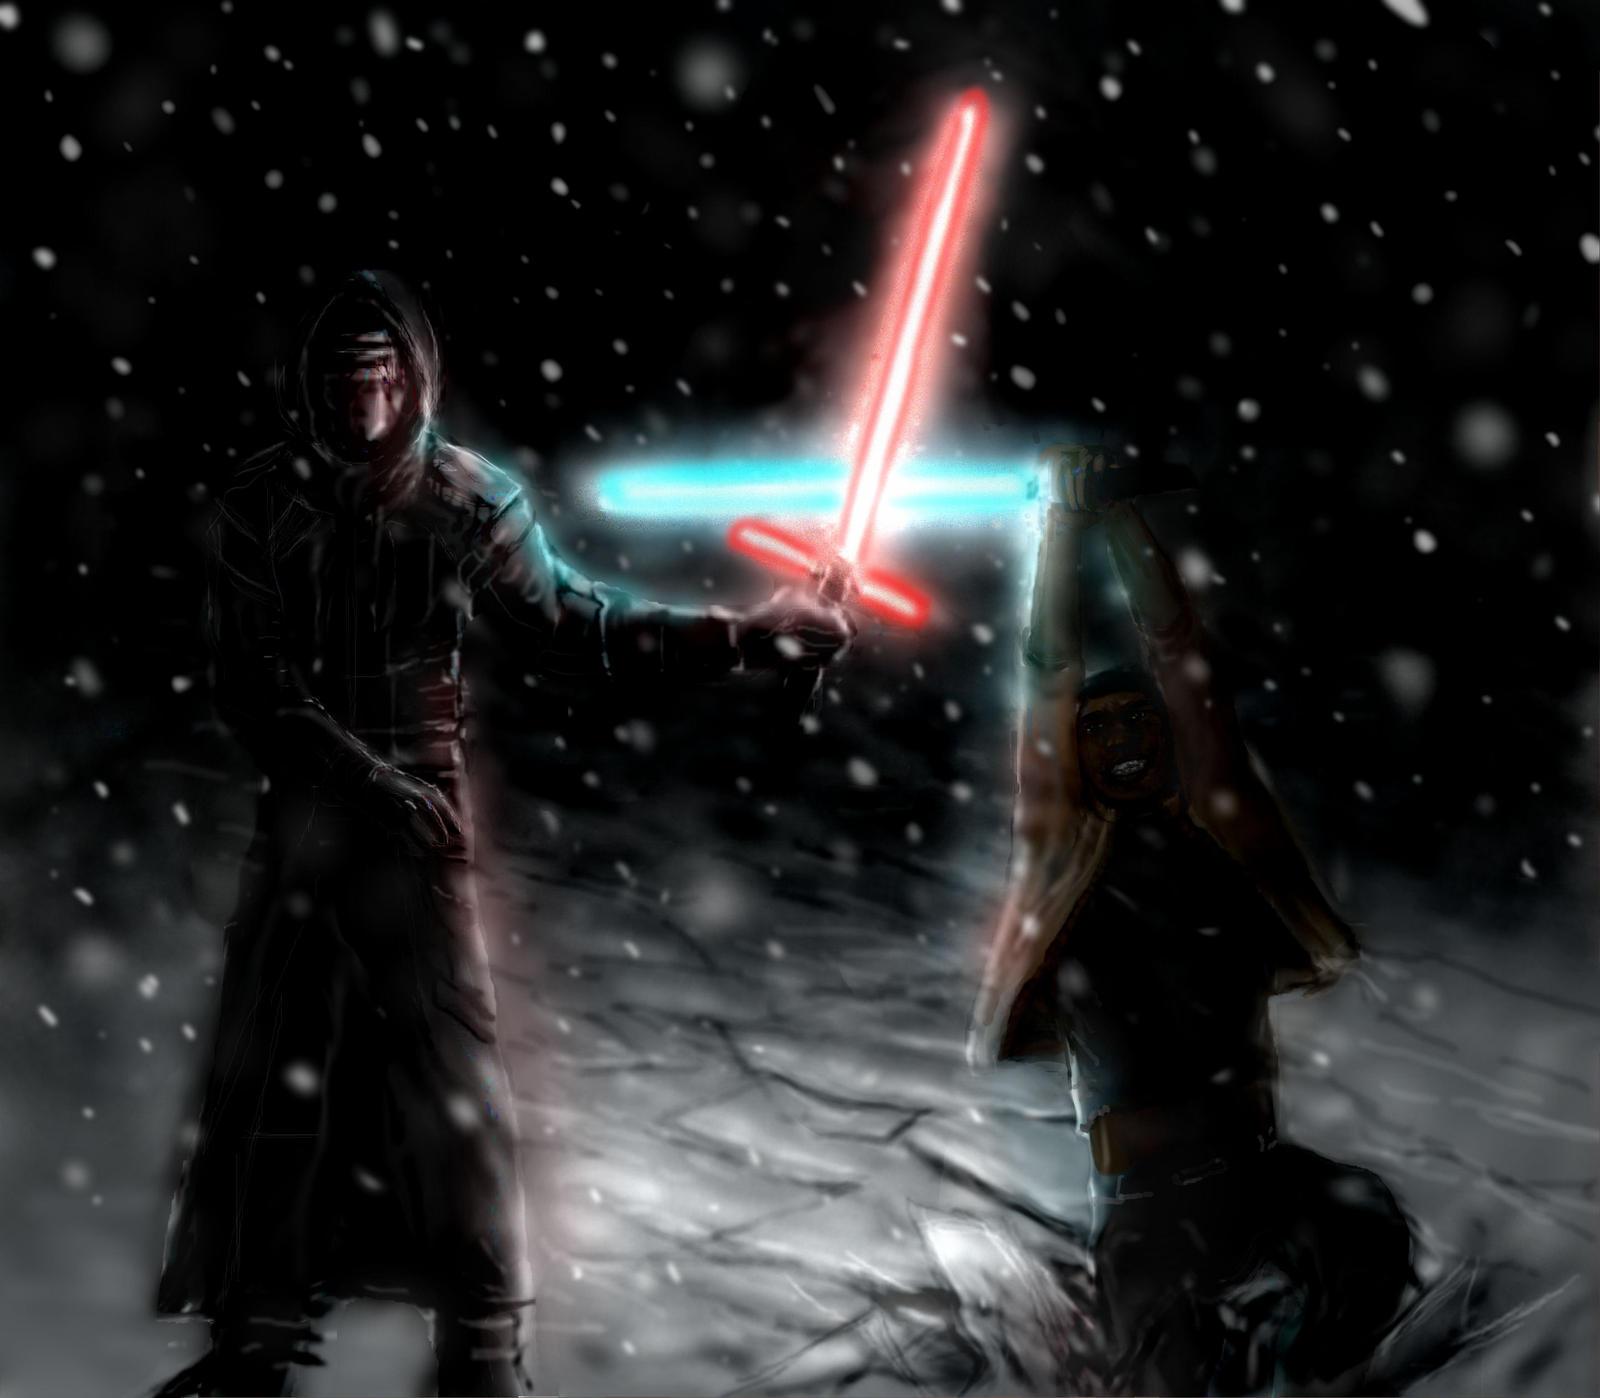 Kylo Ren Fights Finn Star Wars By Modji 33 On Deviantart